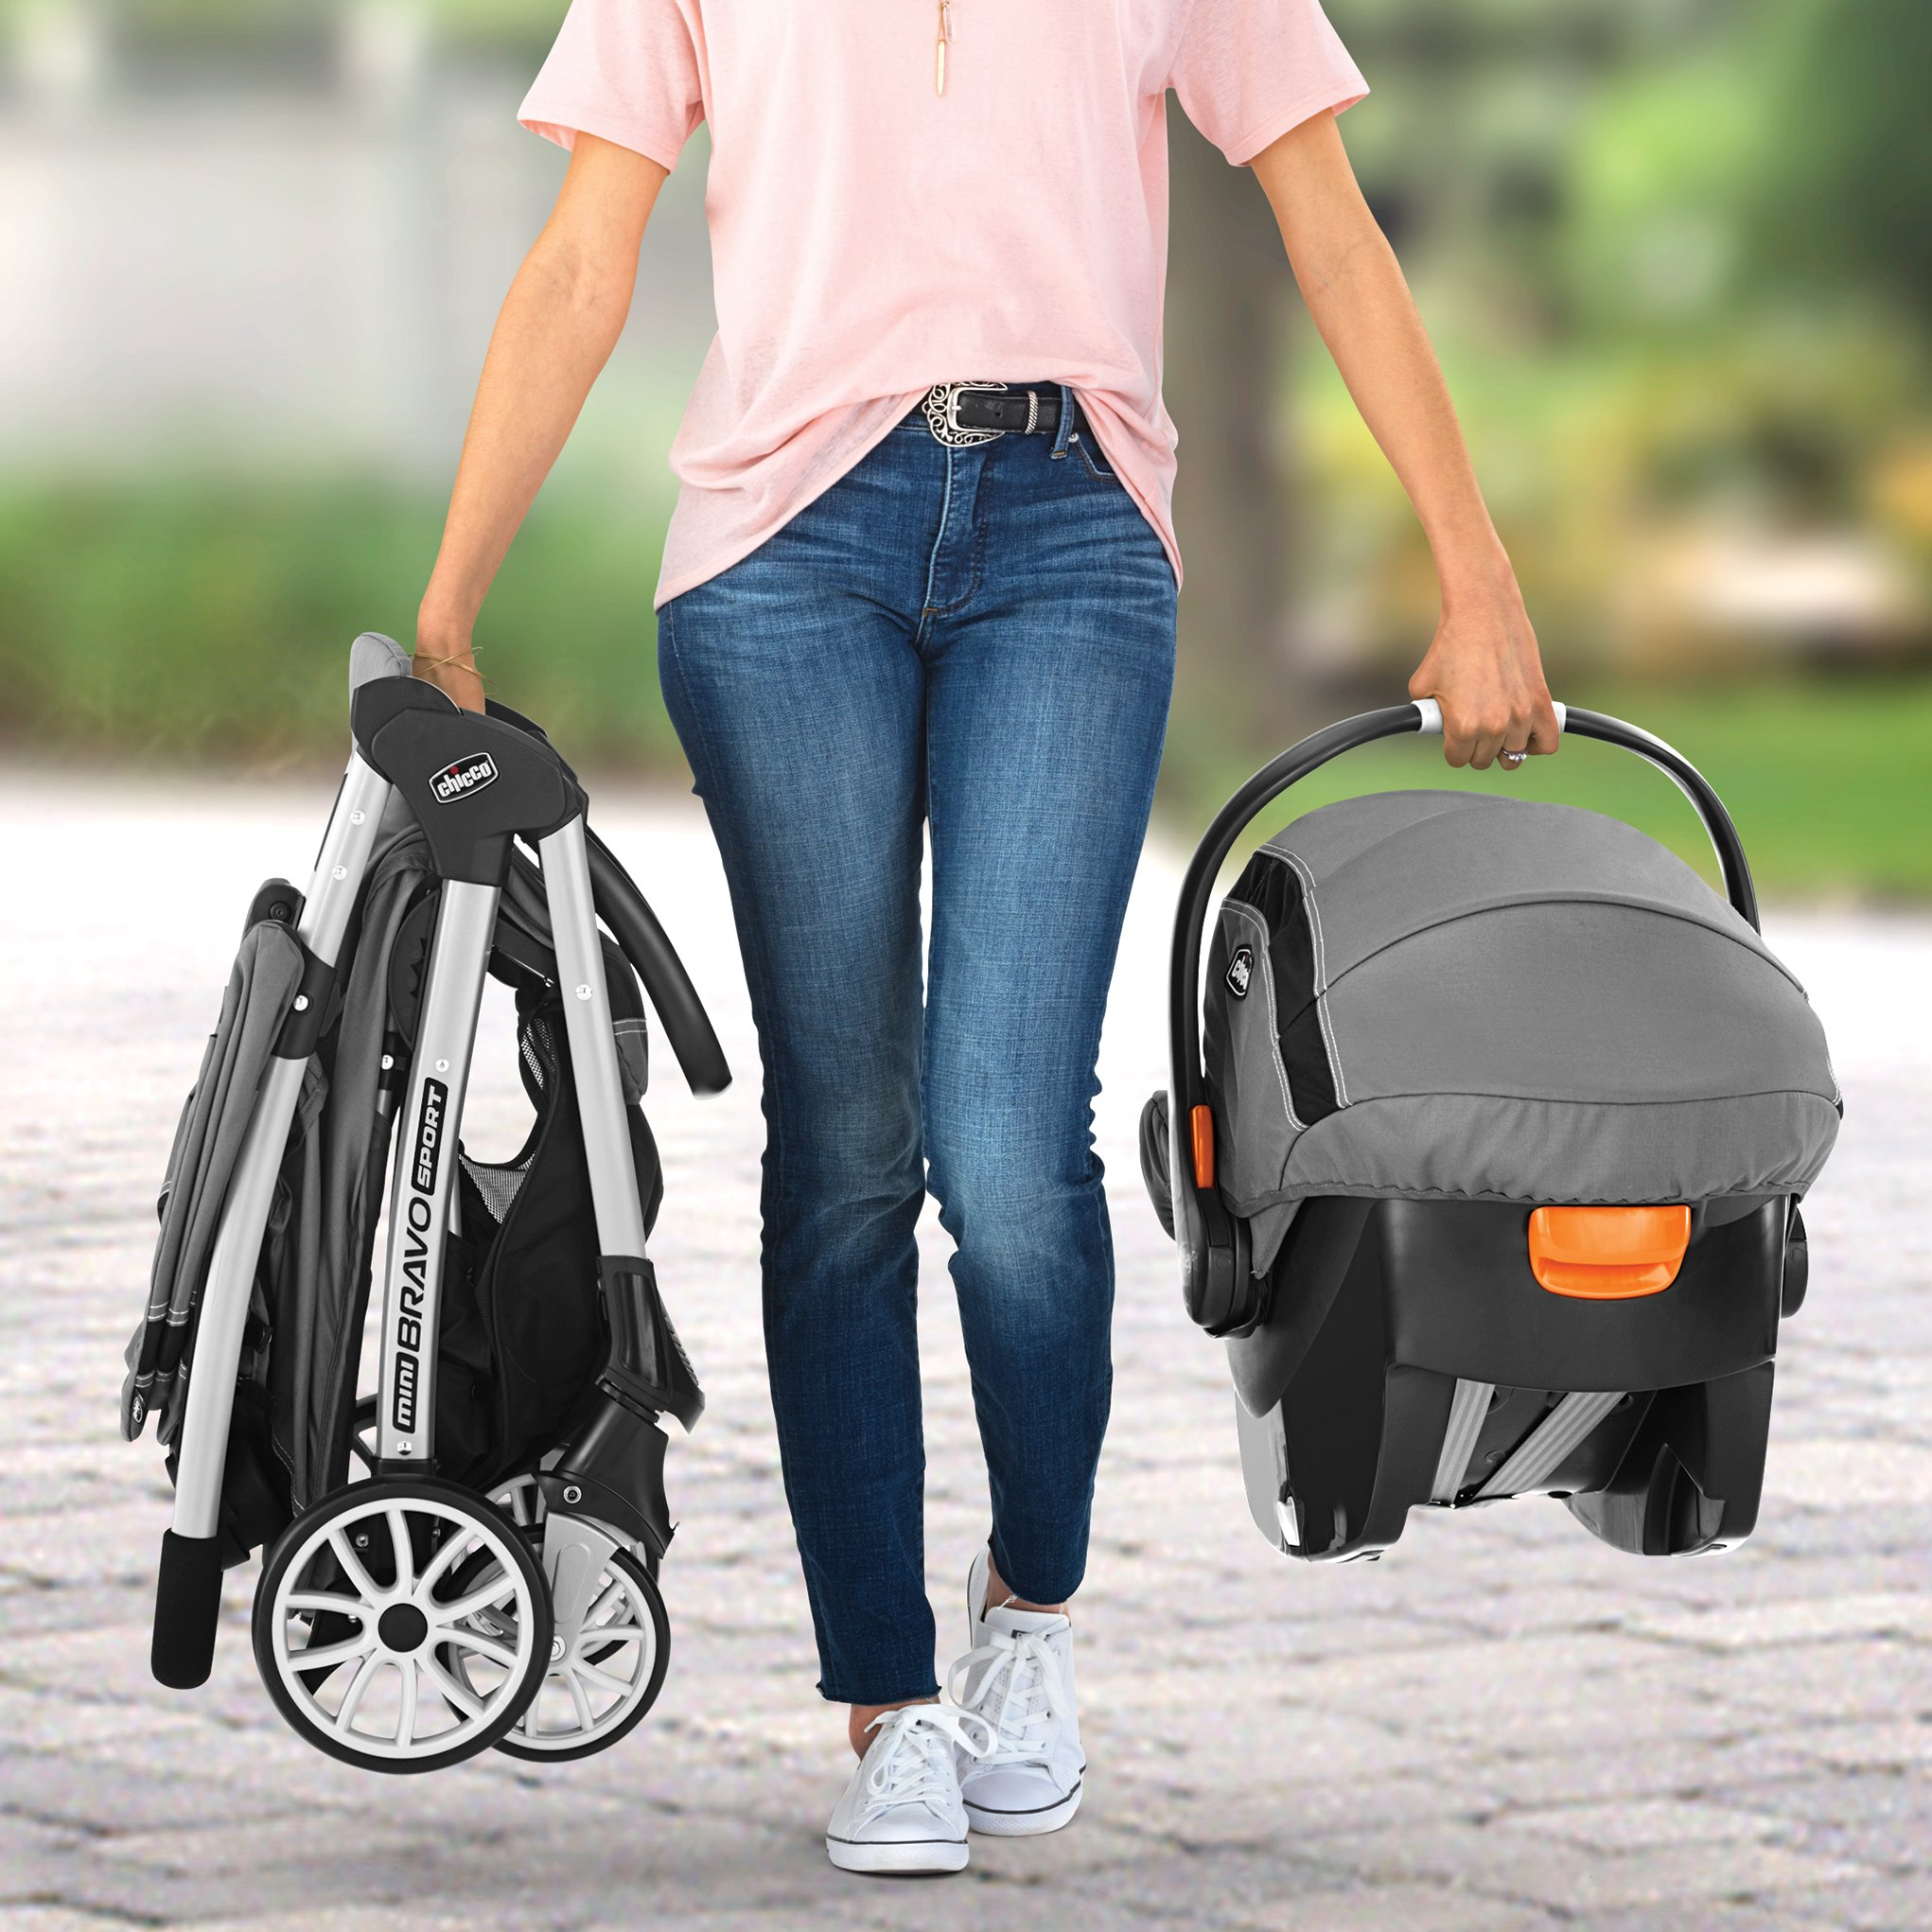 Chicco Mini Bravo Sport Travel System, Carbon by Chicco (Image #8)